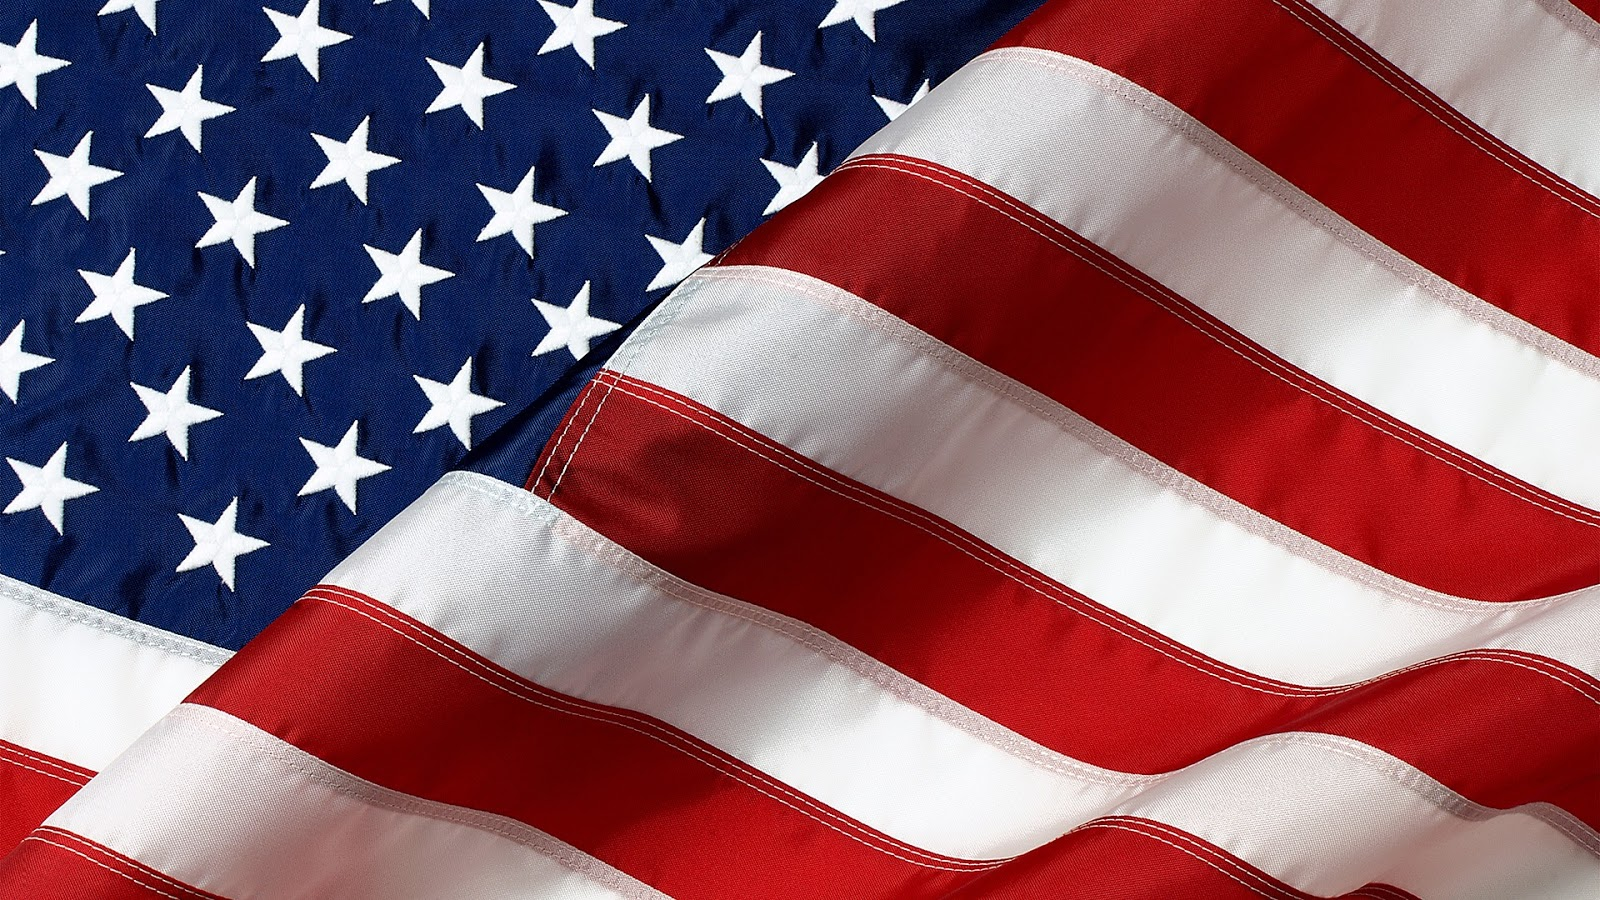 ... wallpaper american flag hd wallpaper old american flag with black